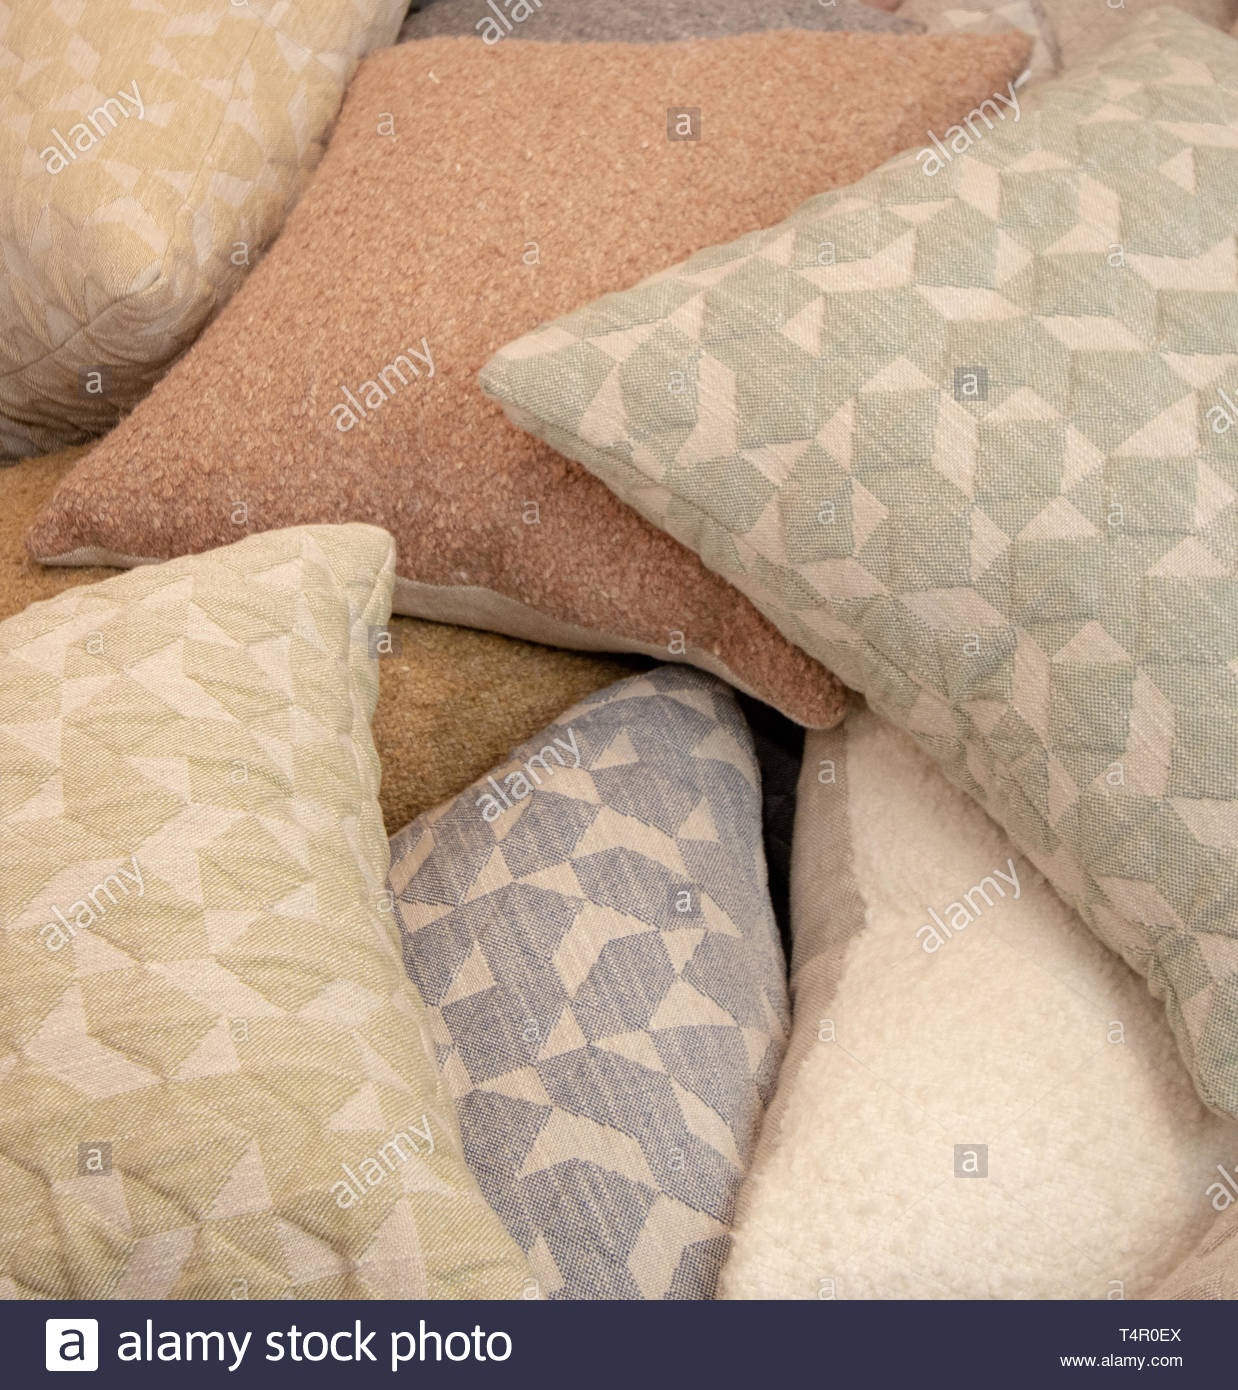 pale pillows overlap - Stock Image